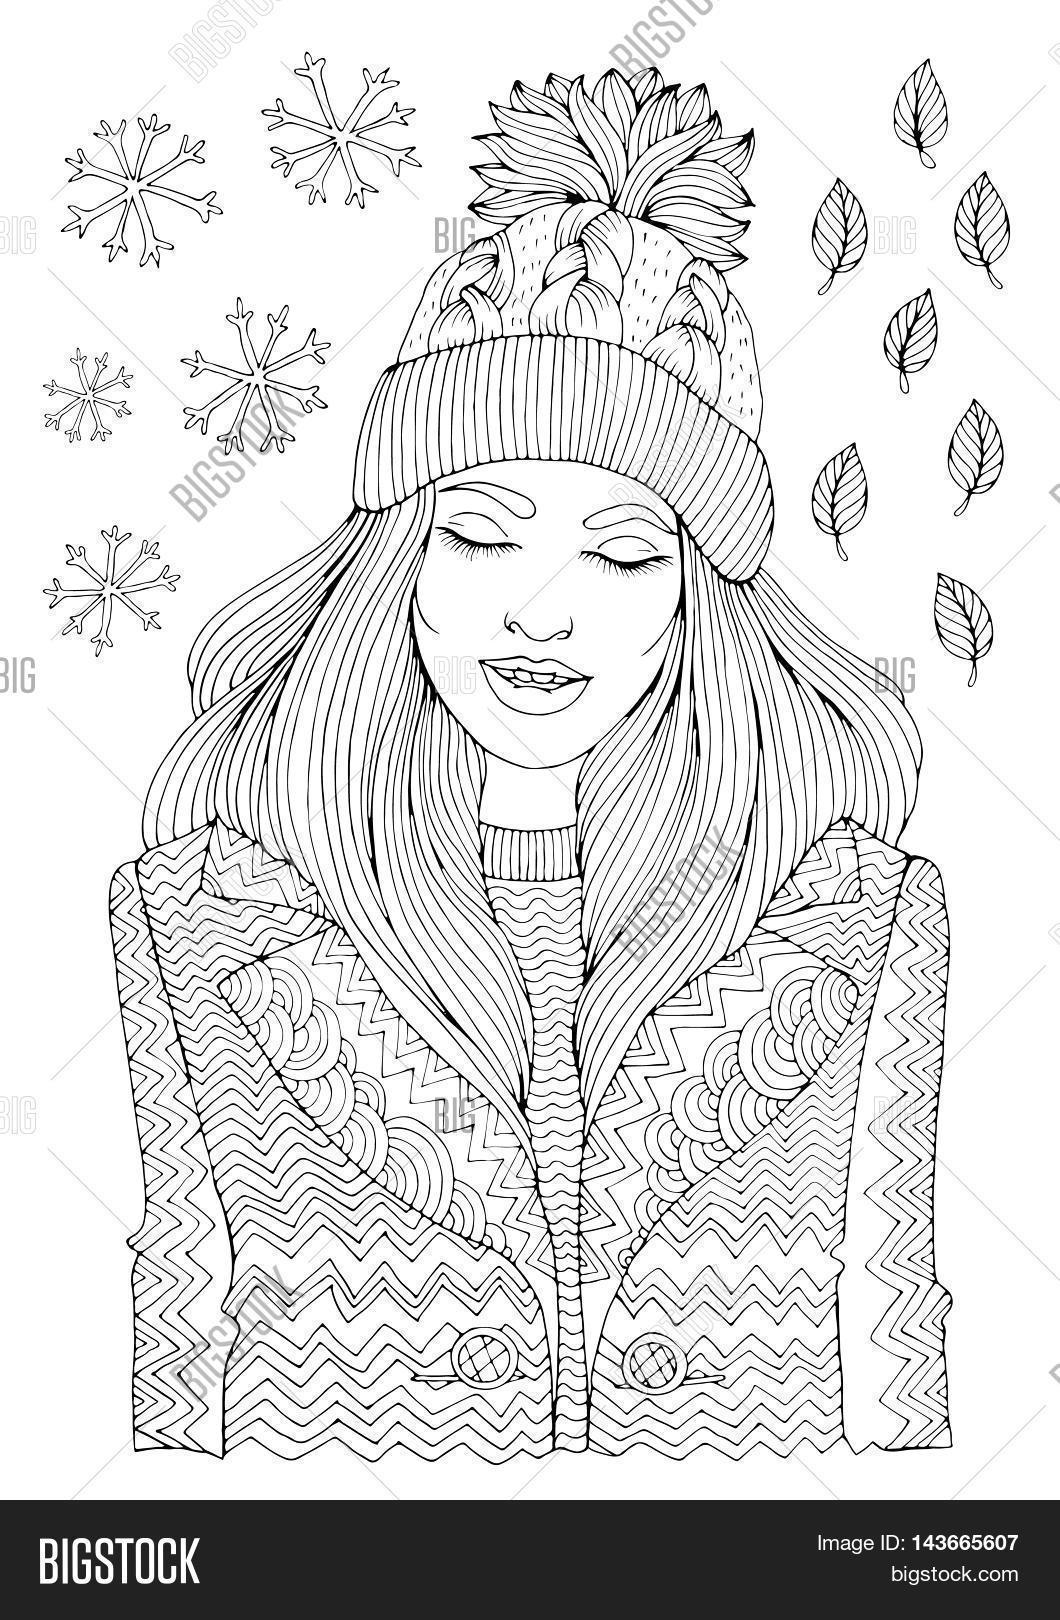 How to Draw a Snowflake  Design amp Illustration Envato Tuts